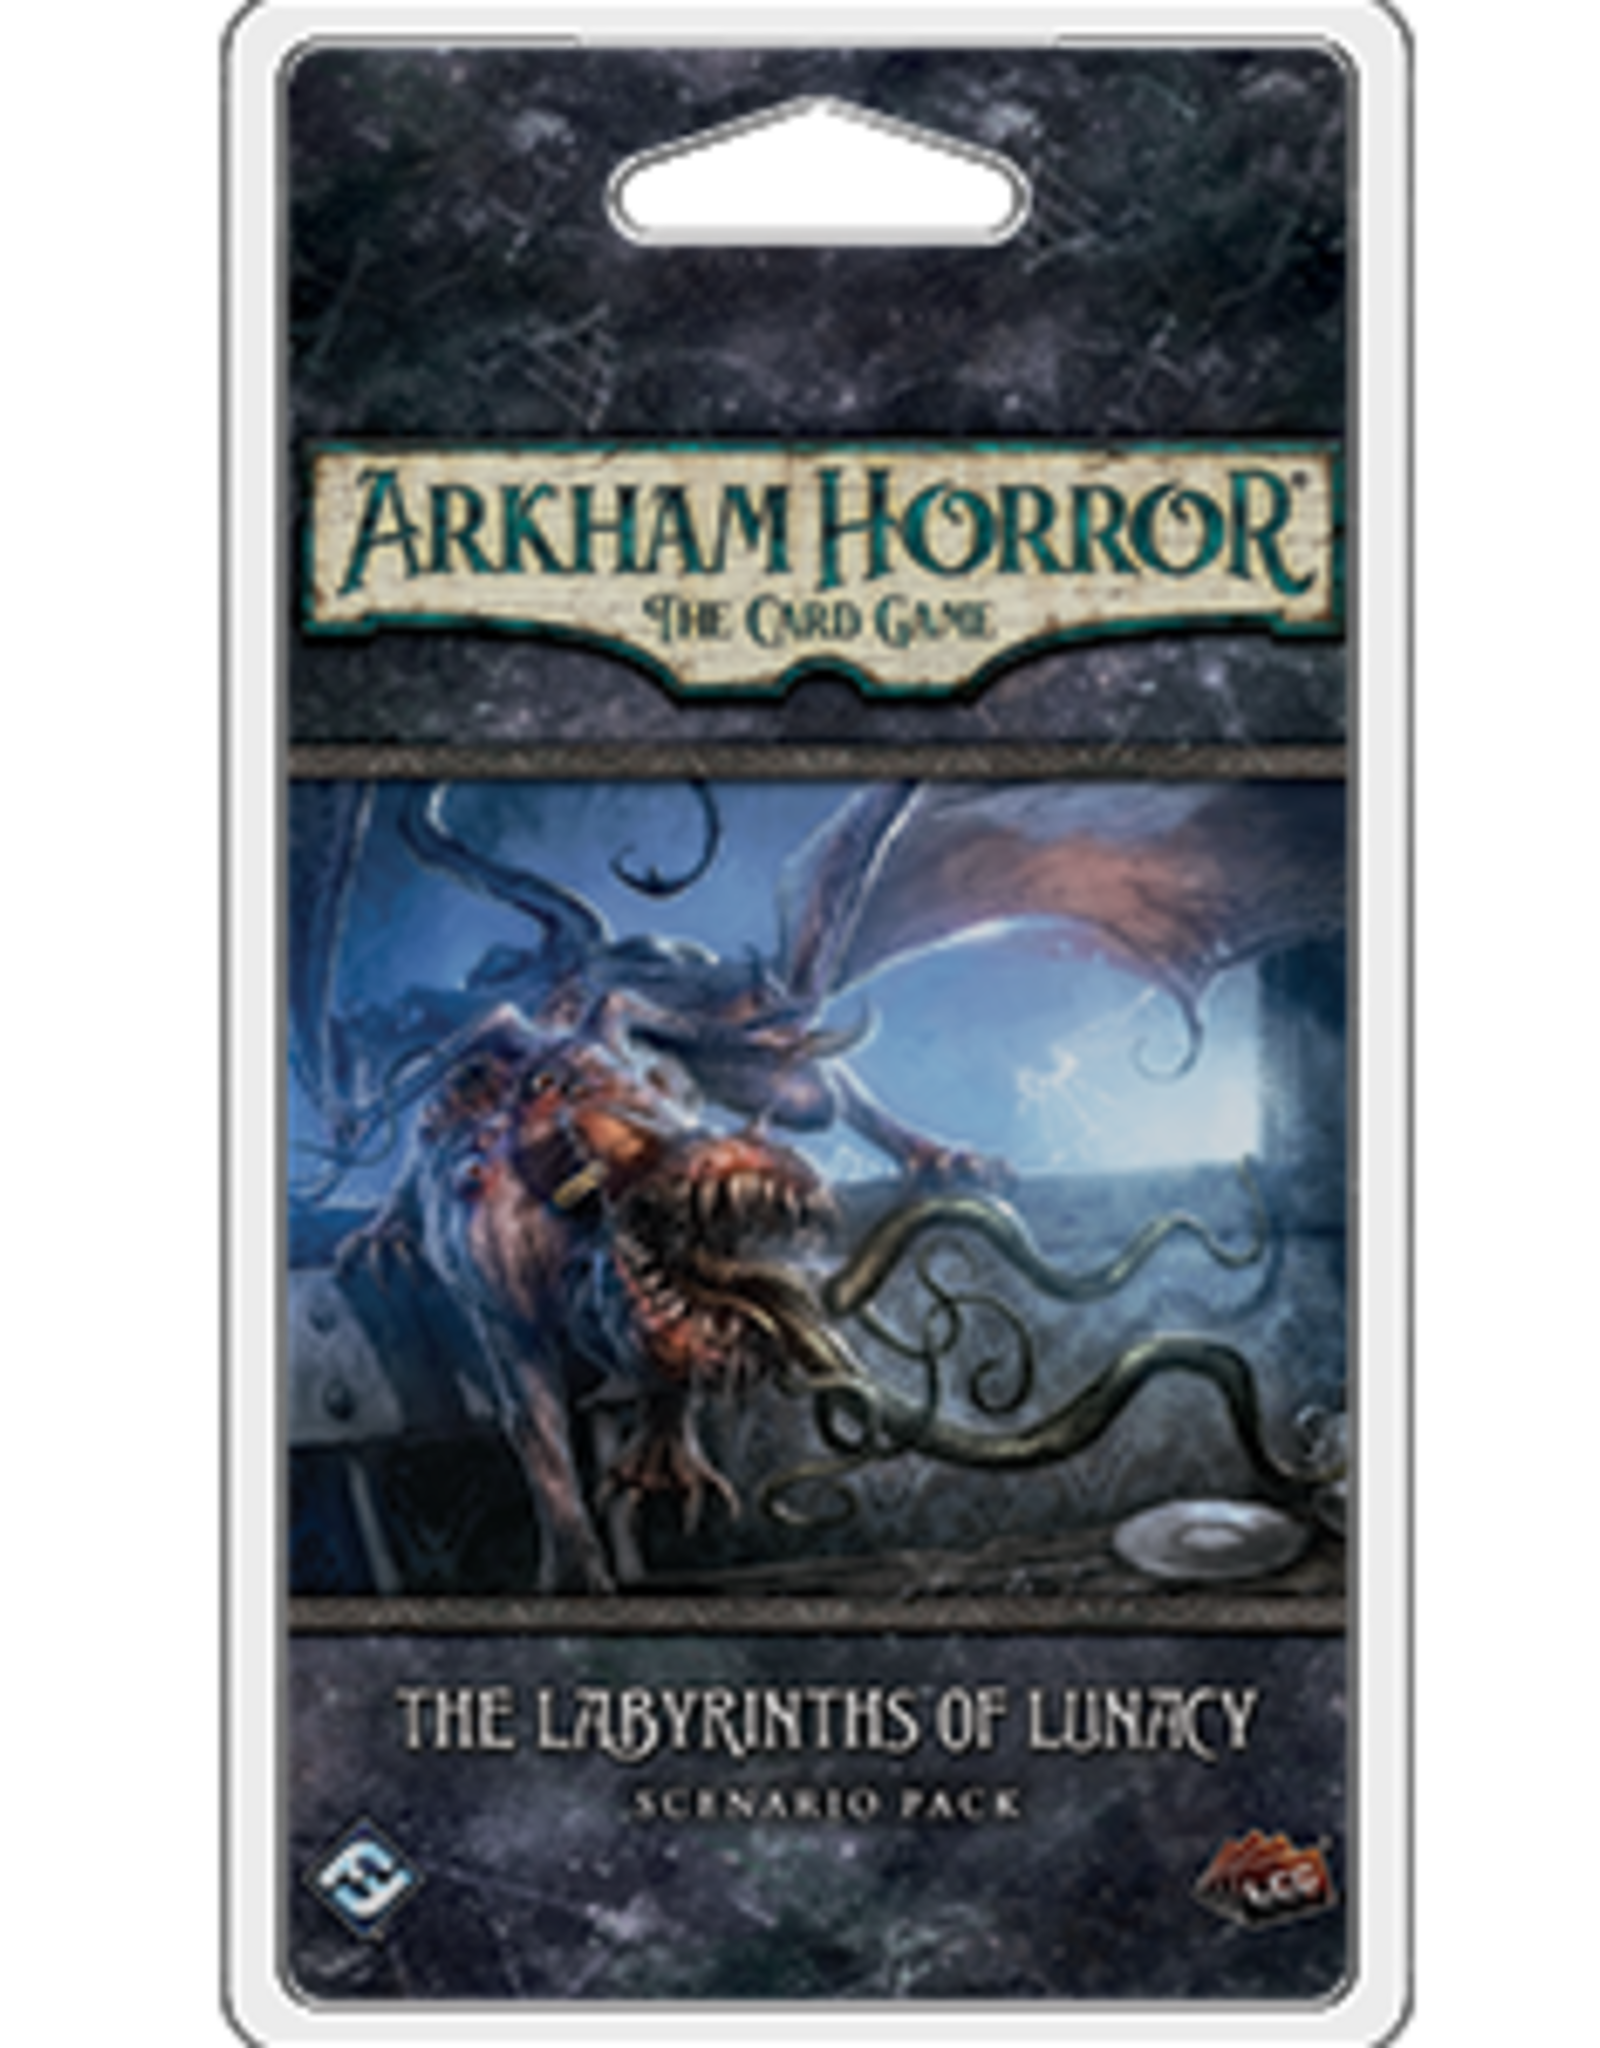 Fantasy Flight Arkham Horror LCG The Labyrinths of Lunacy Scenario Pack